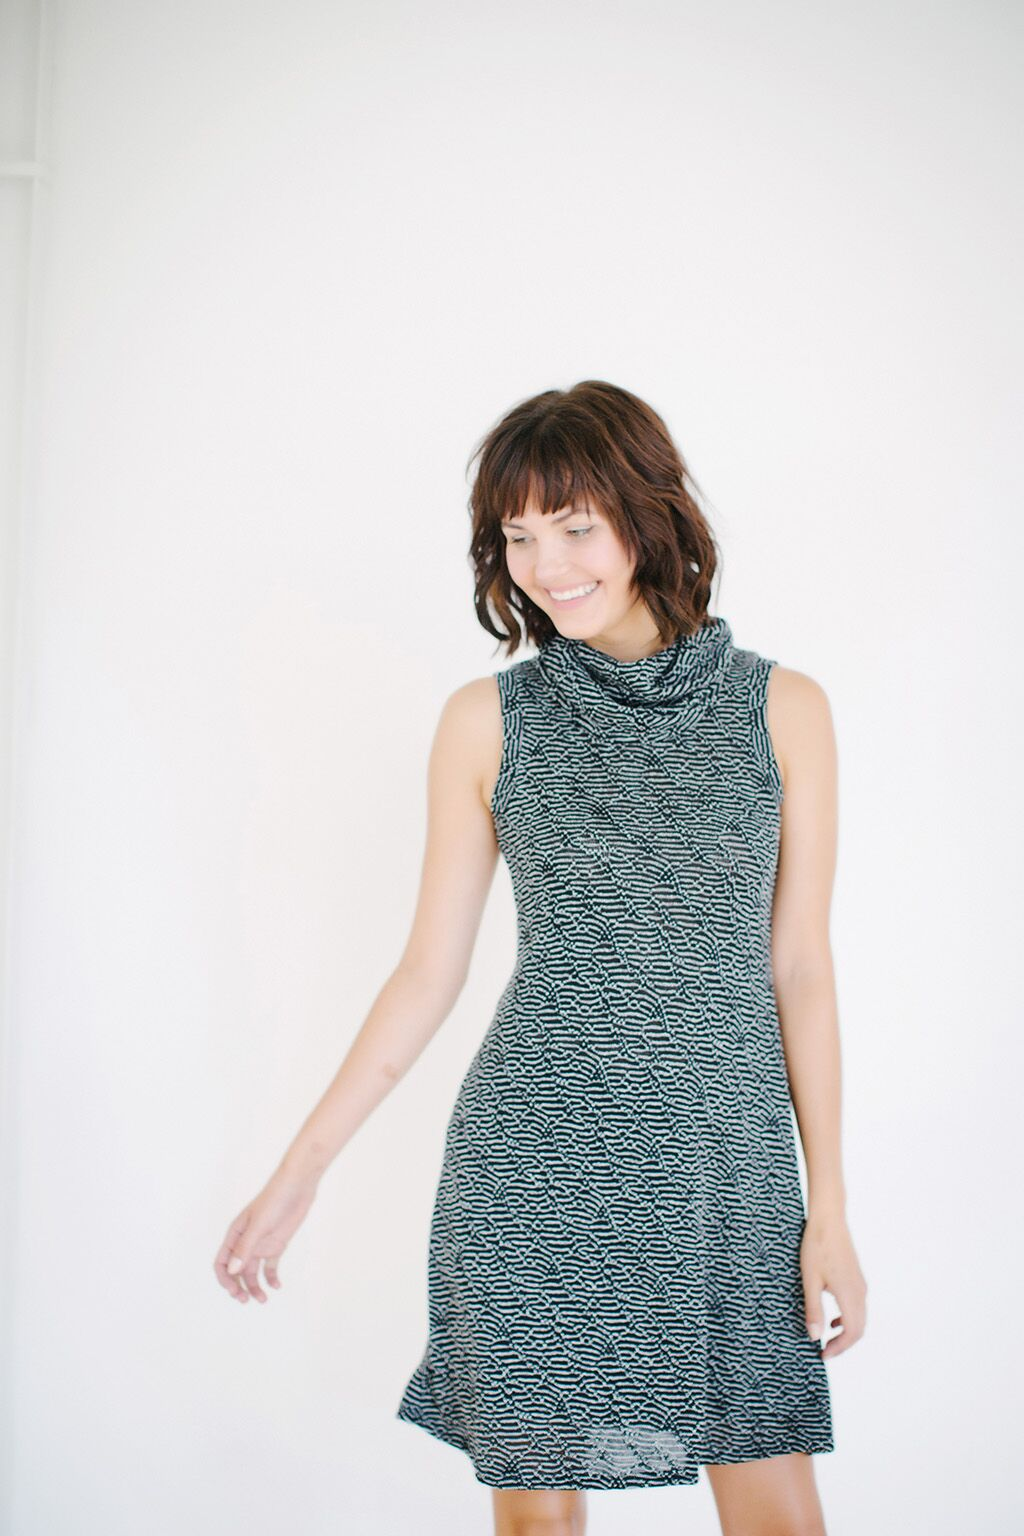 KOKOON Jojo Cowl Neck Dress in Black and White Rivulet Knit 2